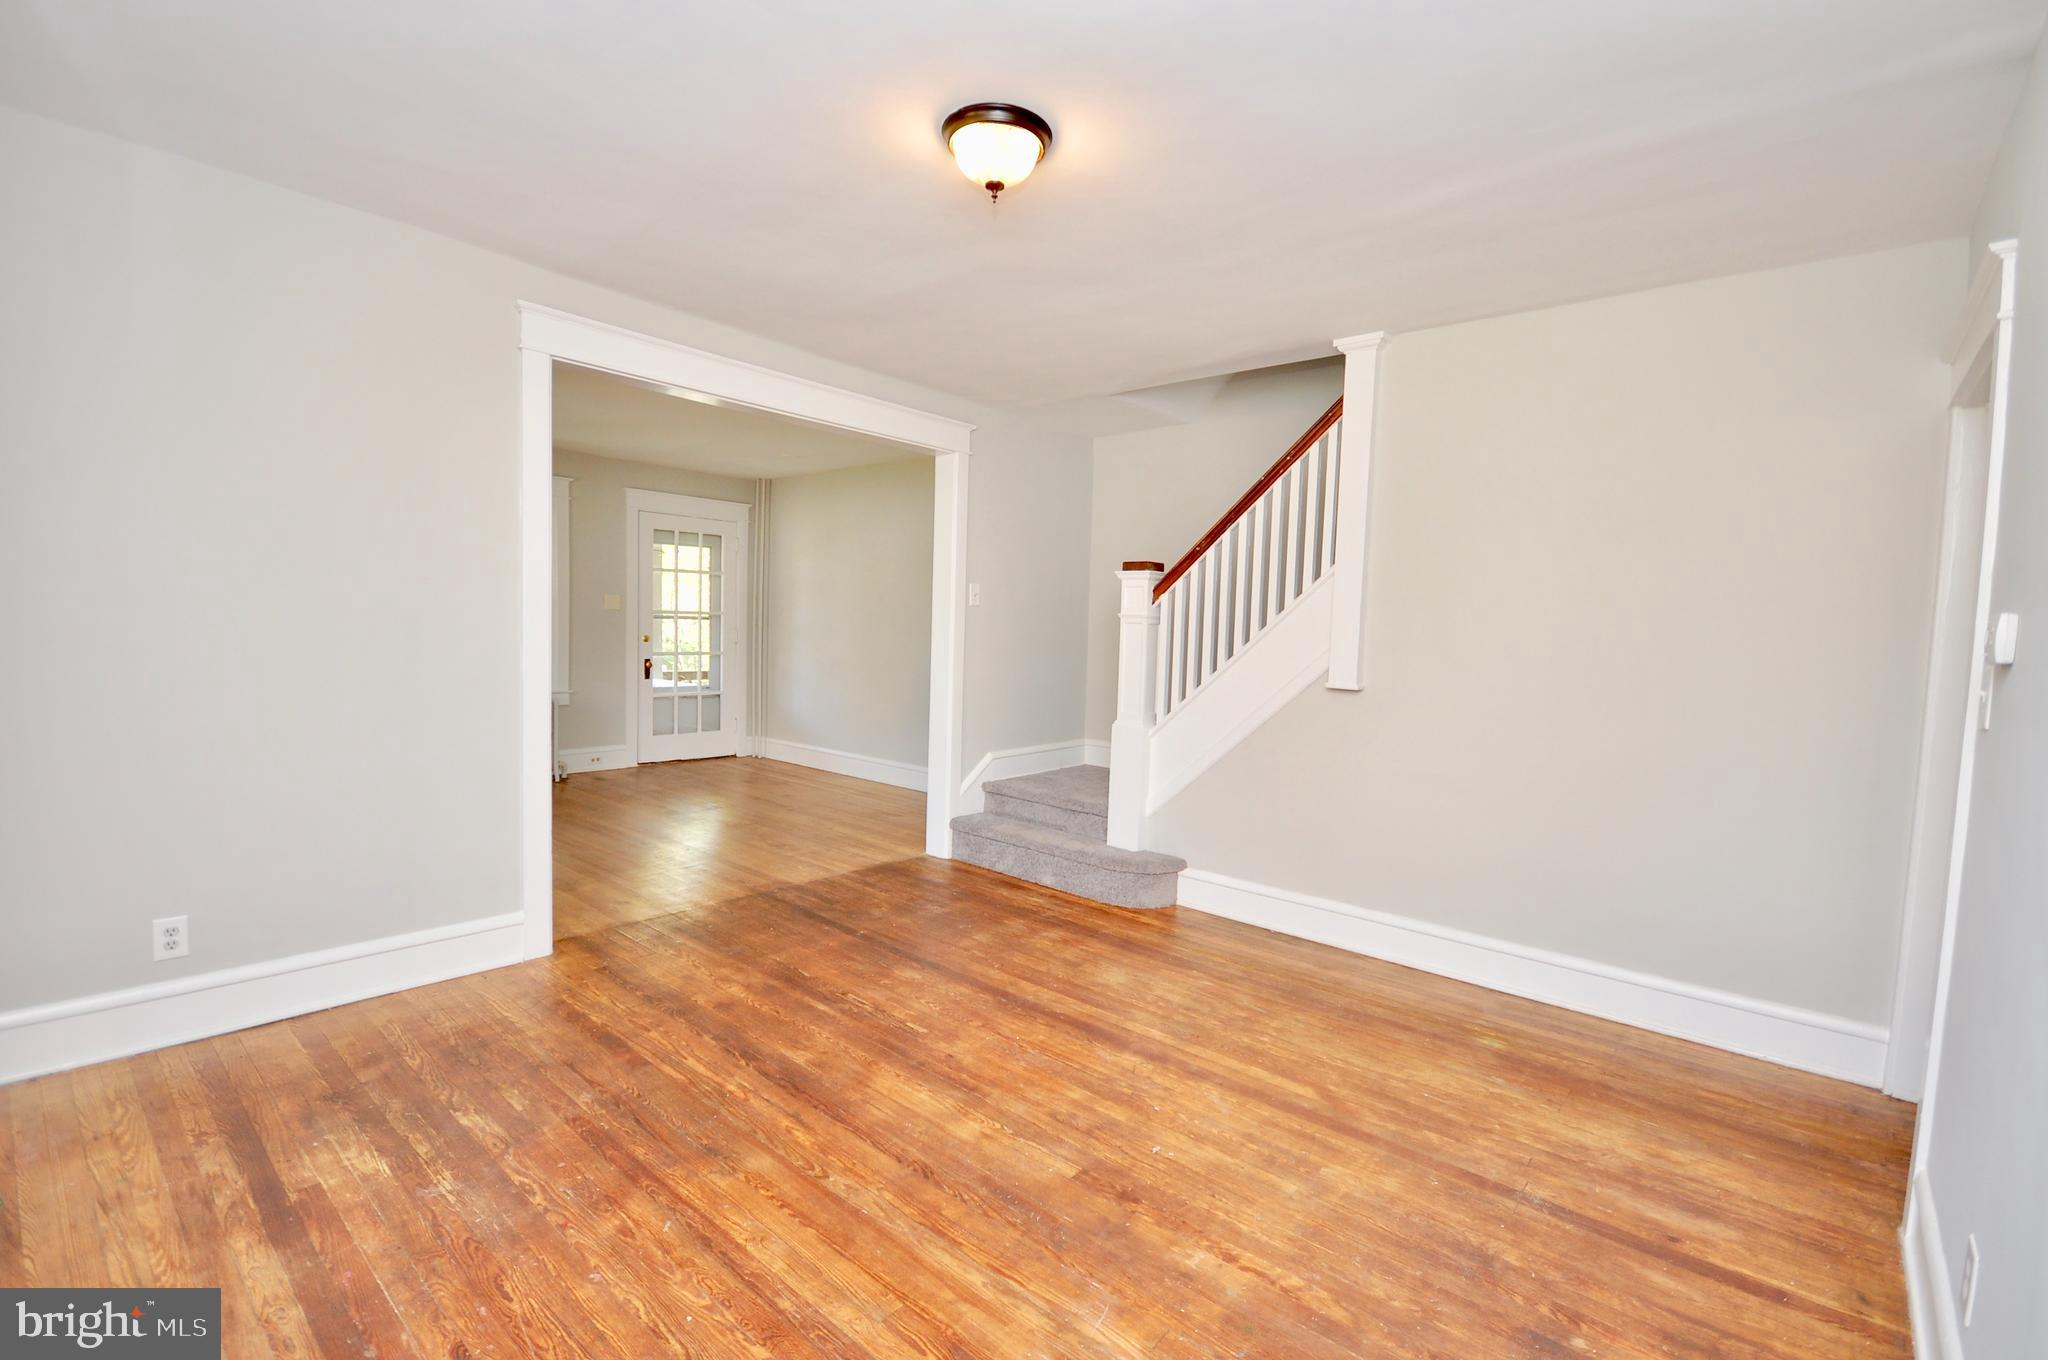 860 W 3RD STREET, LANSDALE, Pennsylvania 19446, 3 Bedrooms Bedrooms, ,1 BathroomBathrooms,Townhouse,For Sale,860 W 3RD STREET,PAMC690374